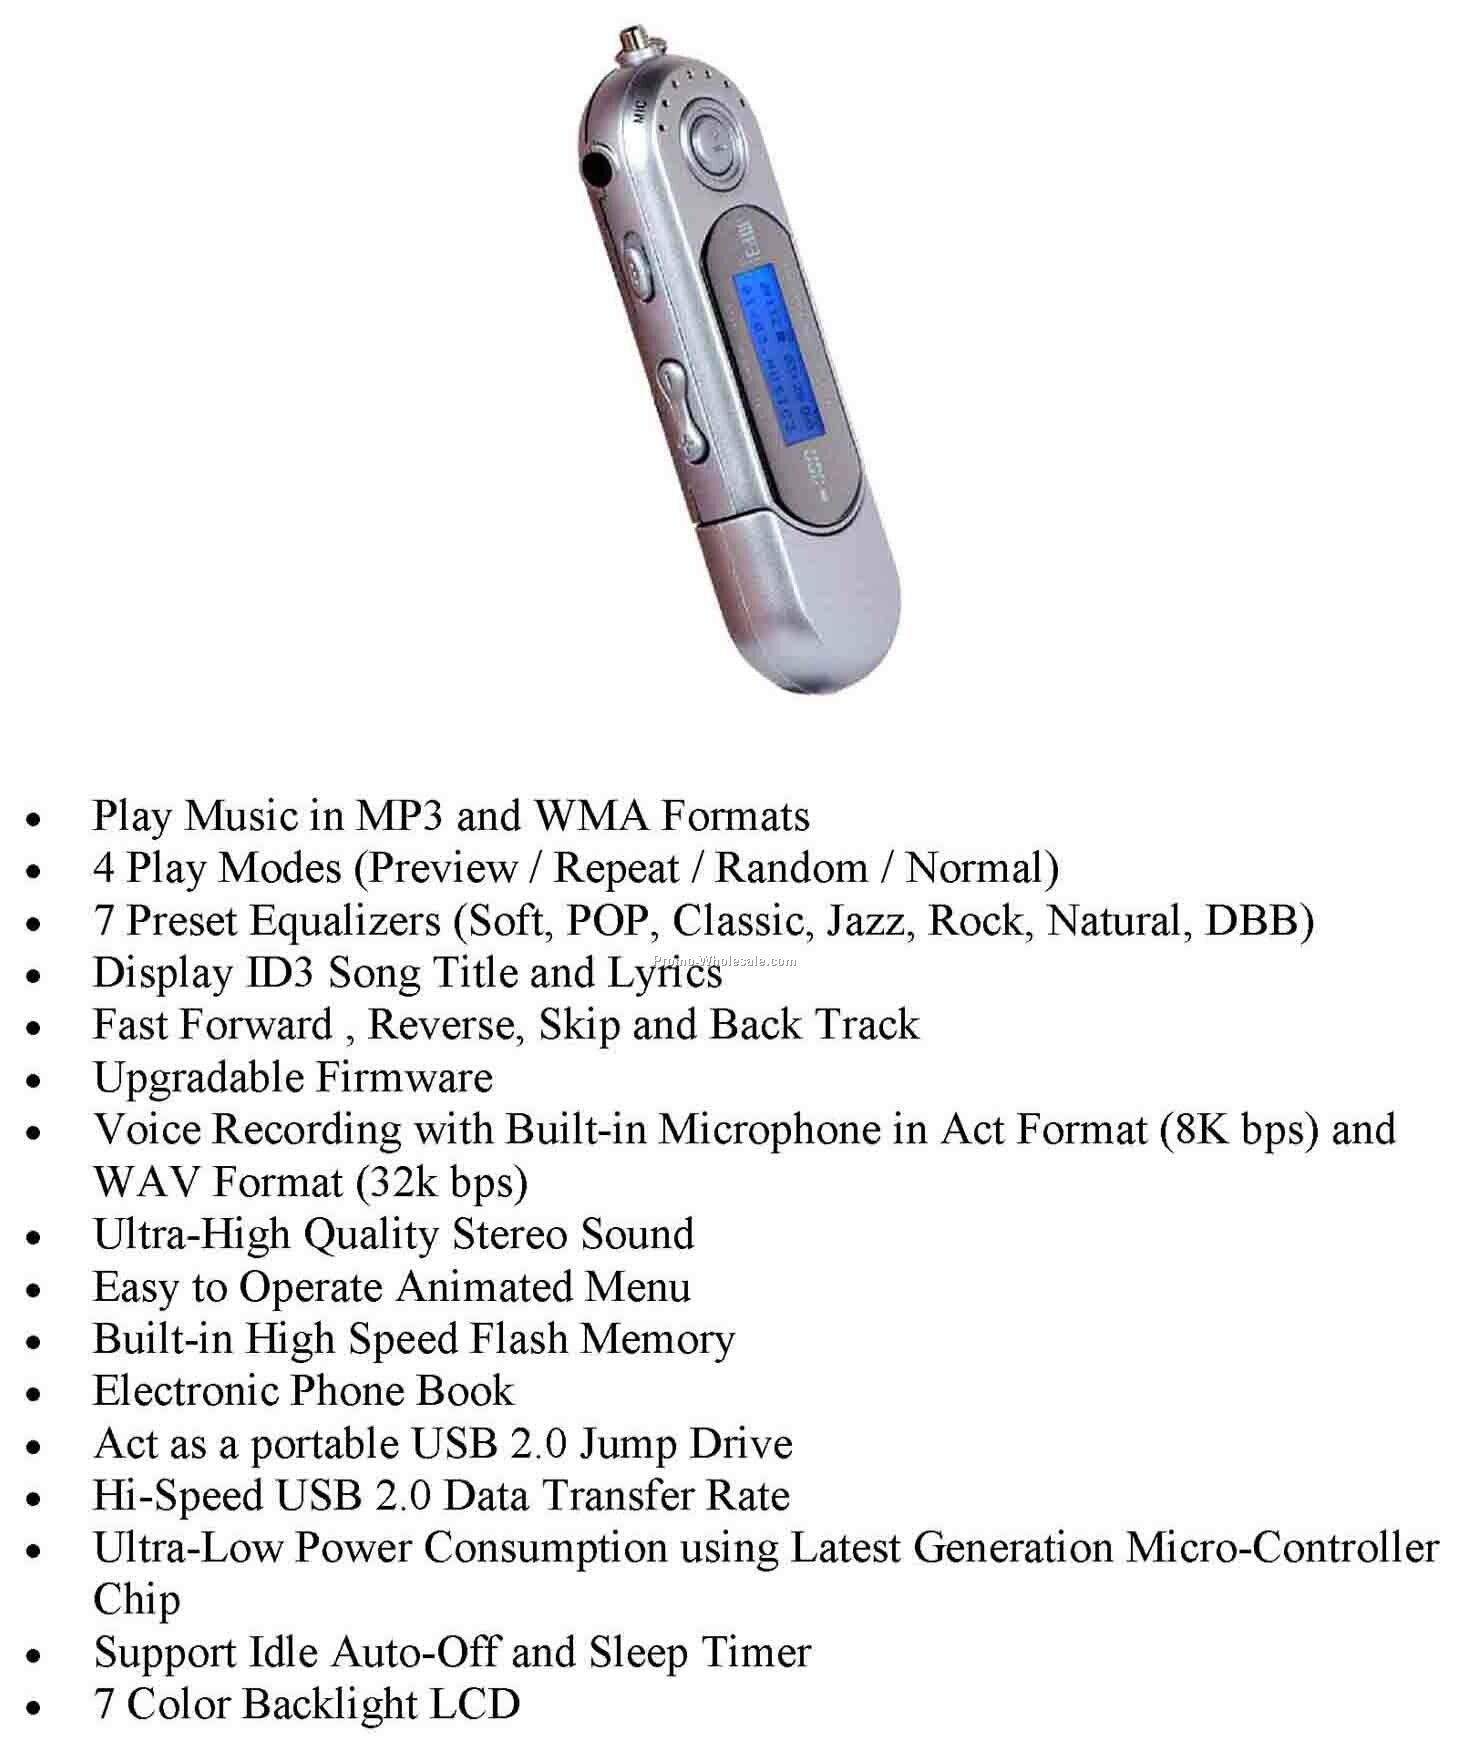 8 Gb Memory Mp3 Player, Flash Drive, Voice Recorder